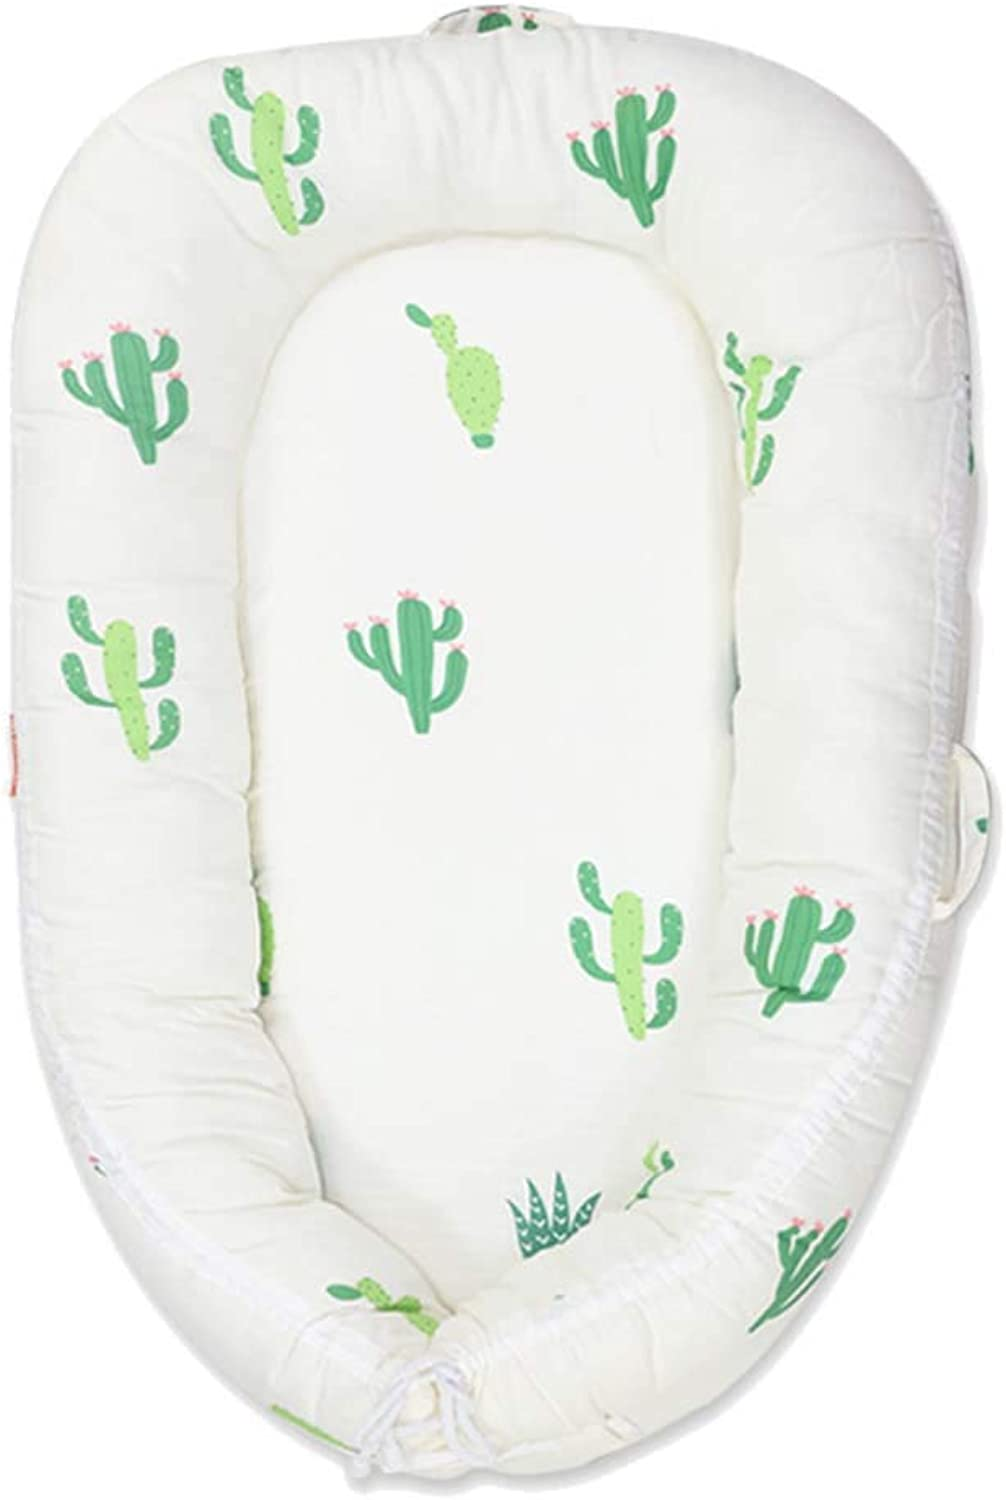 Baby Nest Bed - Sleeper and Lounger - Perfect for Napping,Tummy Time and Travel,Organic Cotton & Hypoallergenic - Suitable from 0-36Months,Cactus